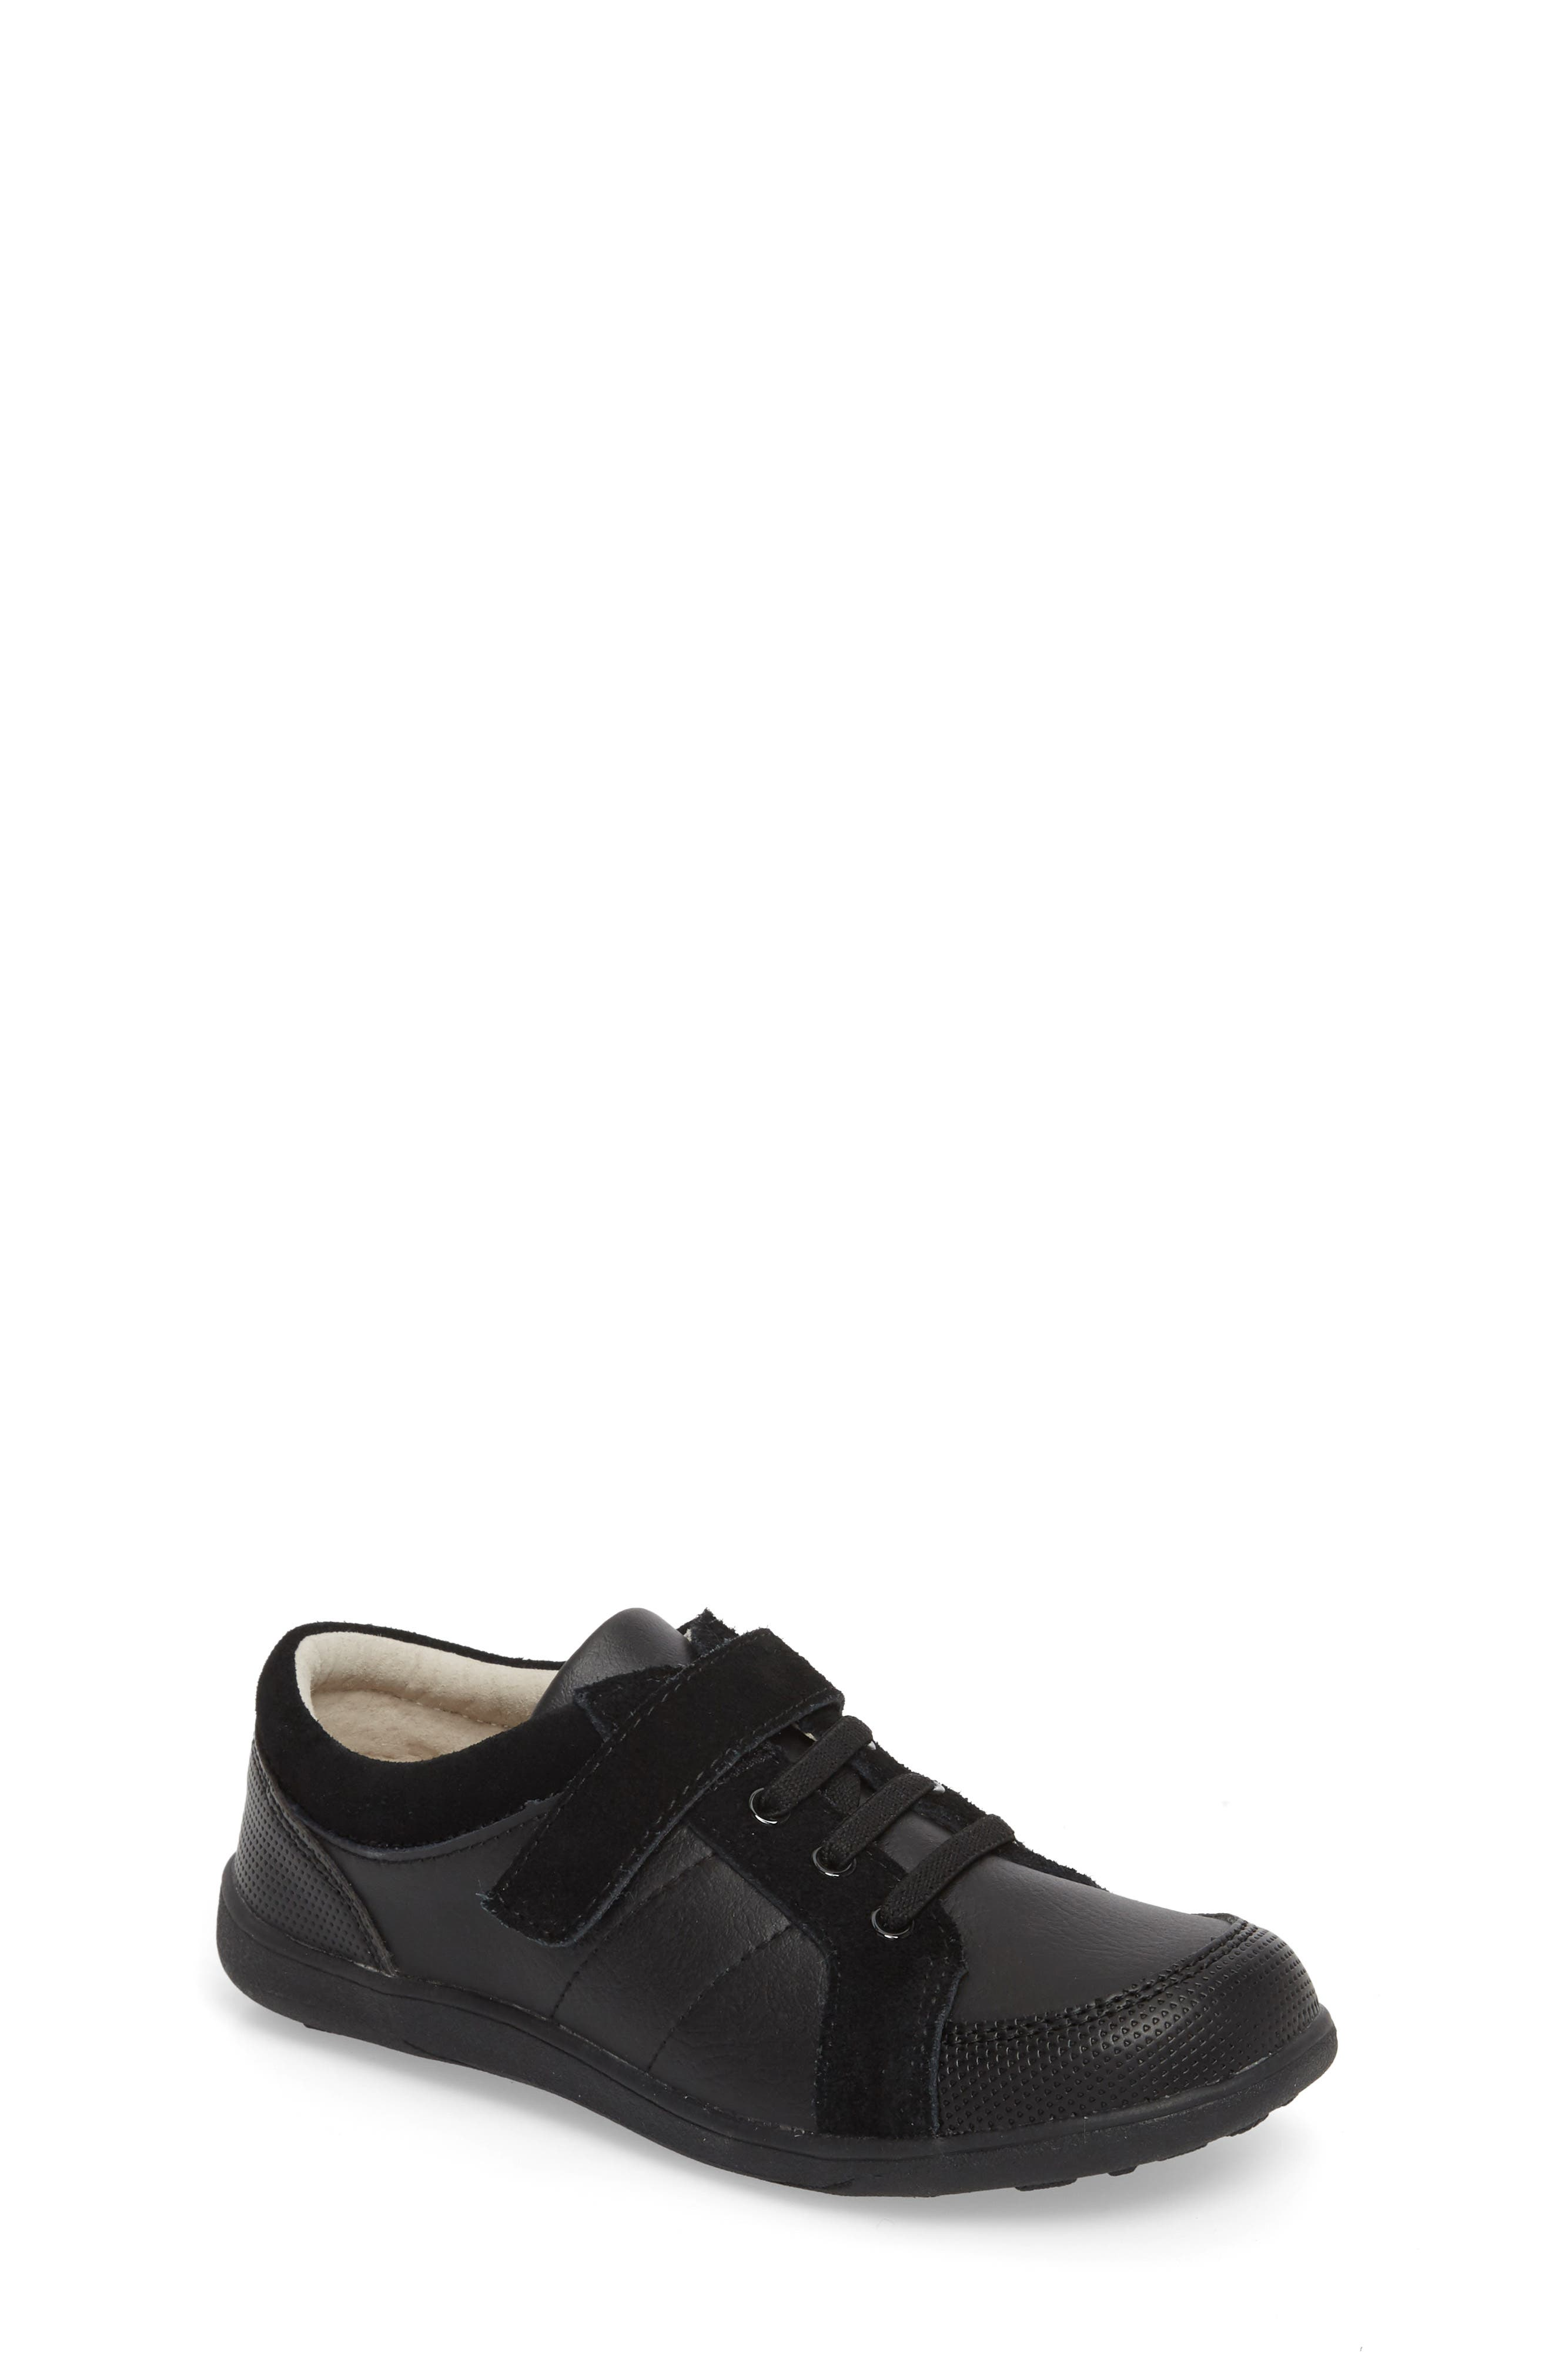 Randal III Sneaker,                         Main,                         color, BLACK